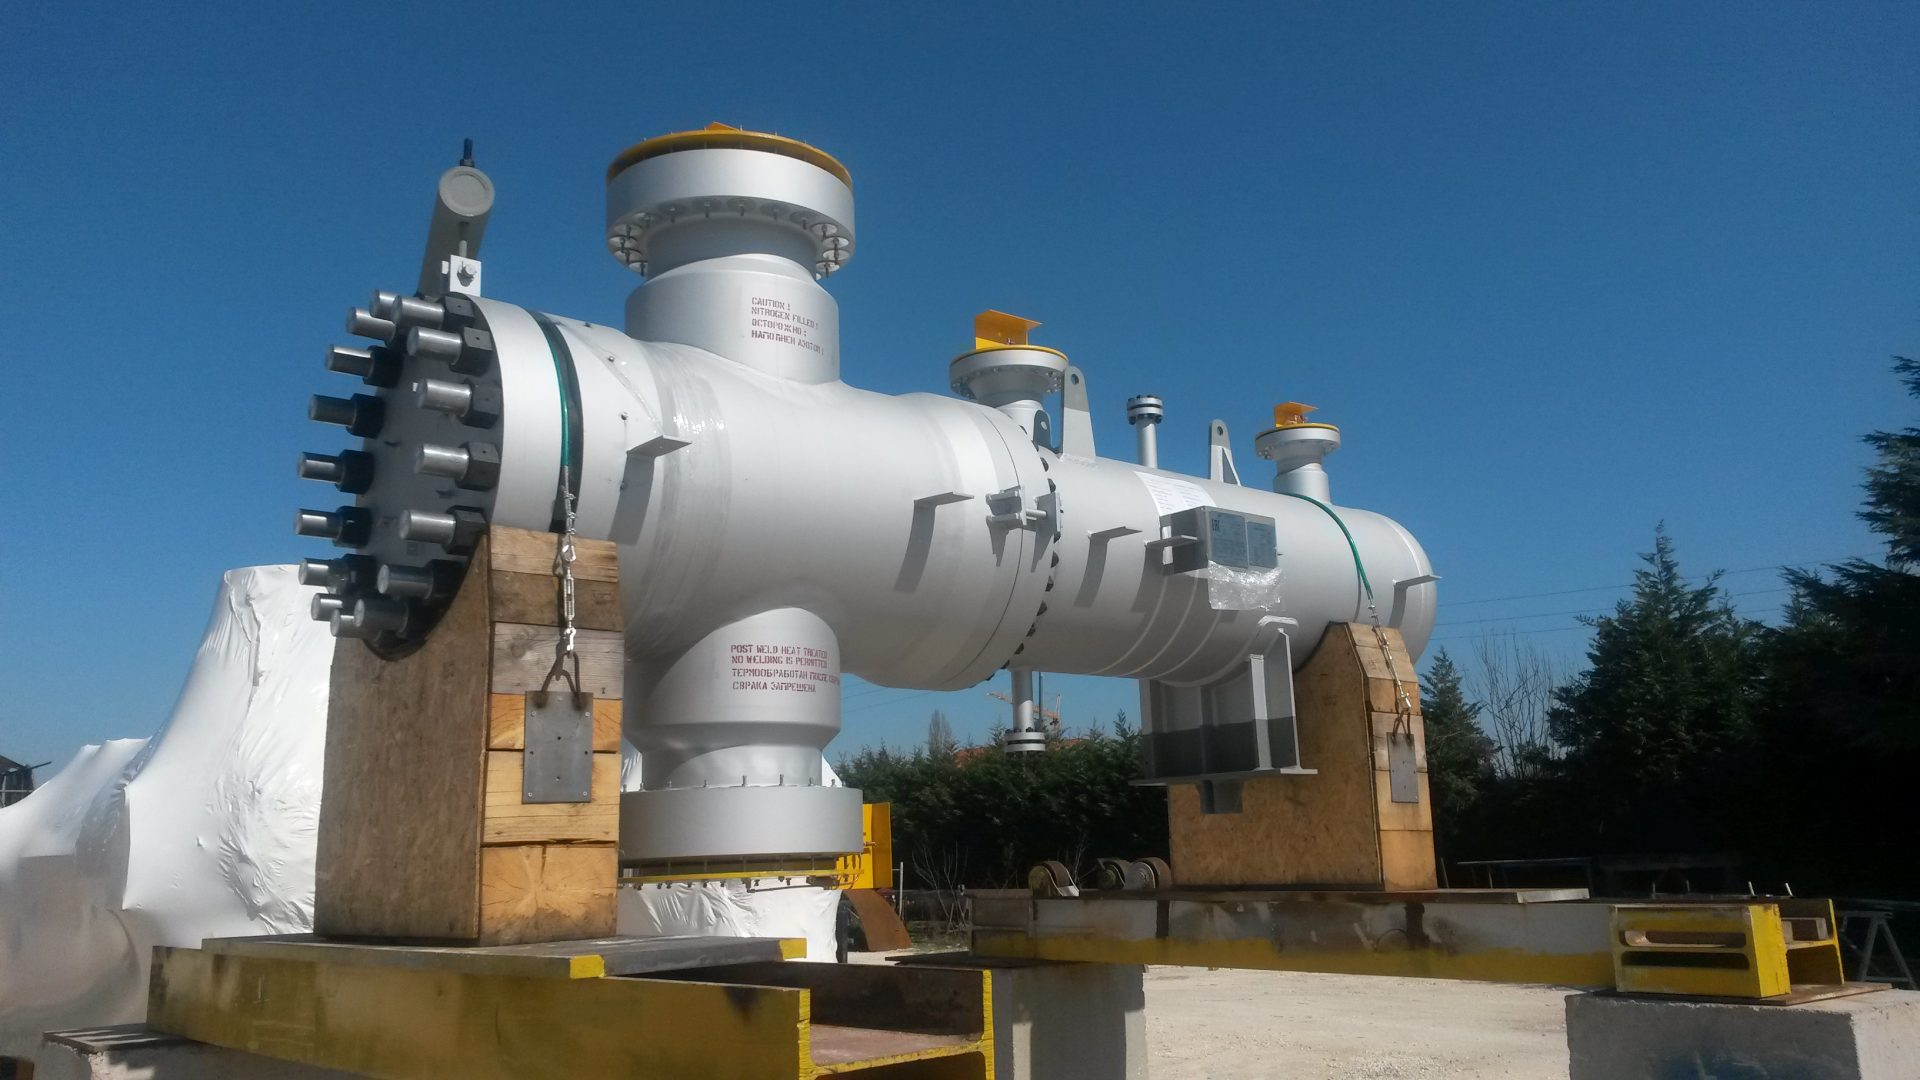 Steam Superheater in SA 387 Gr.11 Cl.2, SA 182 M Gr.11 Cl.2 at Gubakha plant – Size: 3.500 x 1.064 mm; 19 t; Perm, Russia